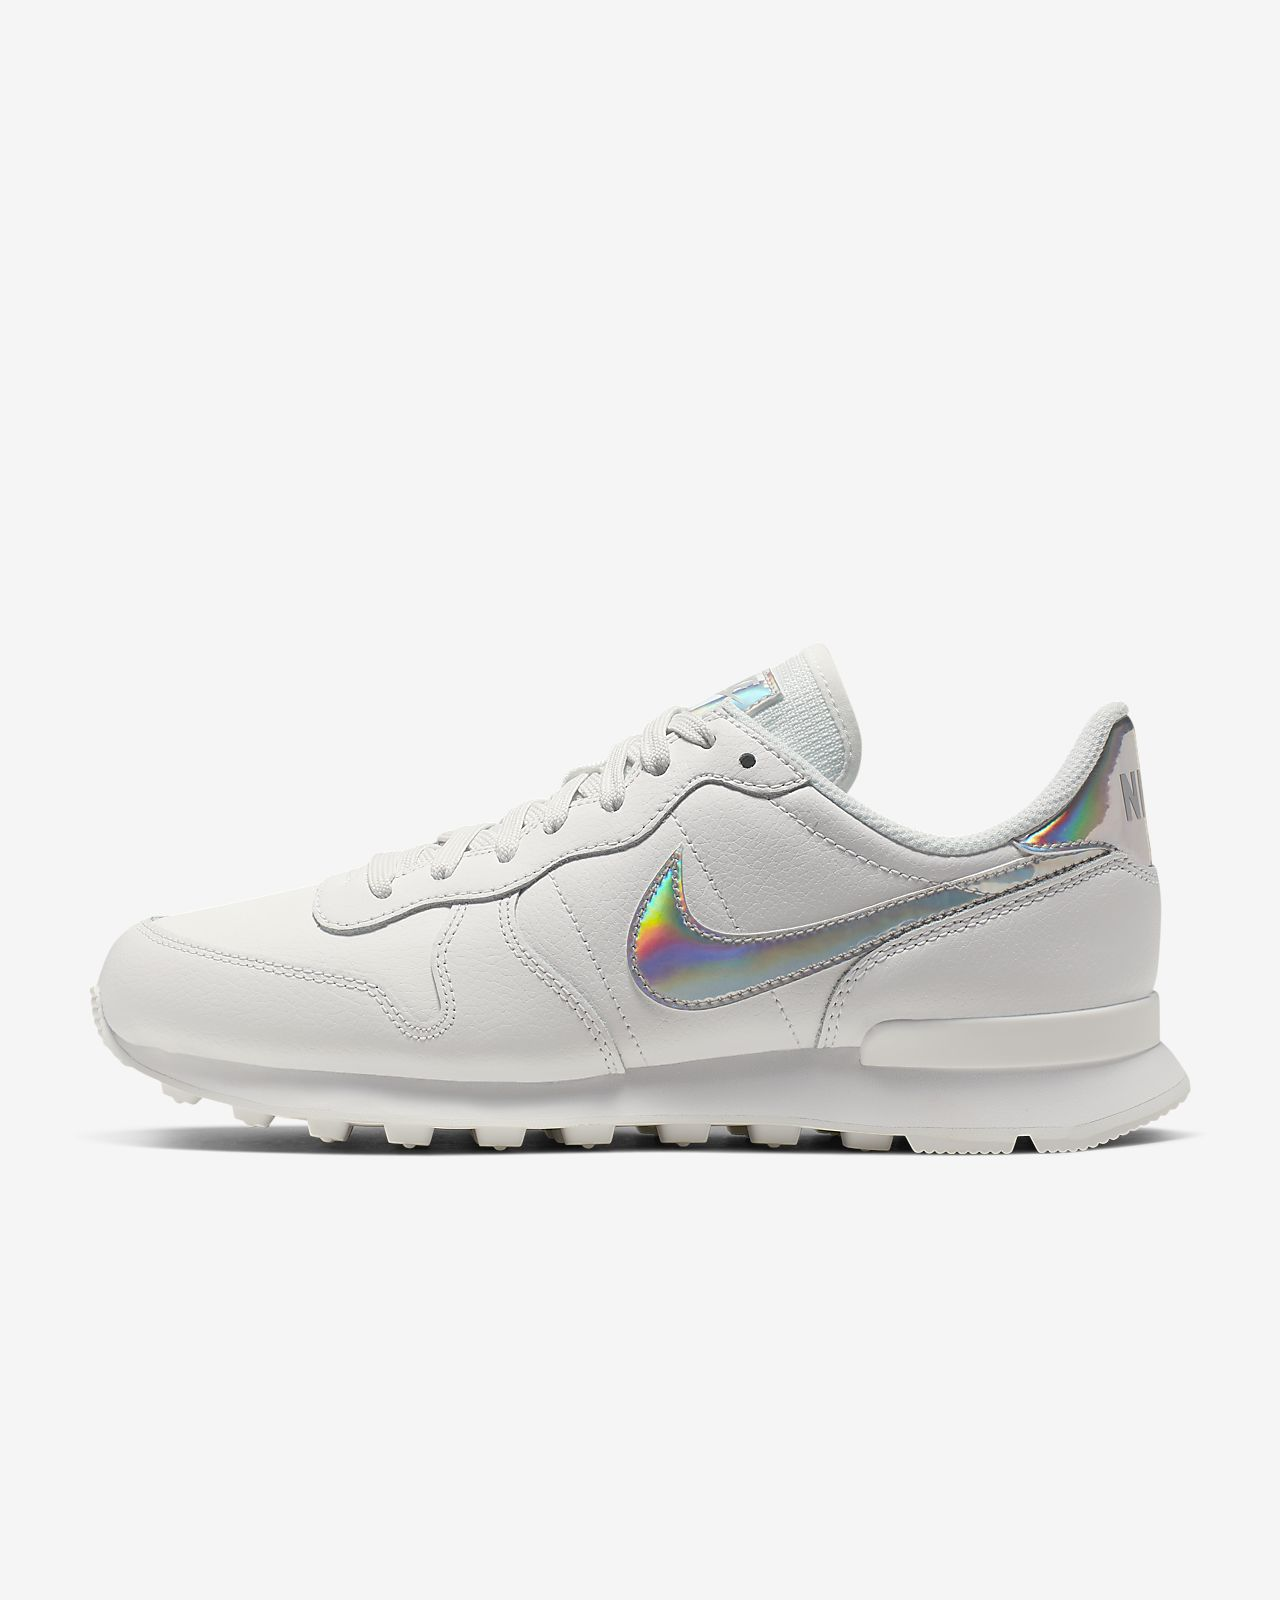 Nike Internationalist SE schimmernder Damenschuh